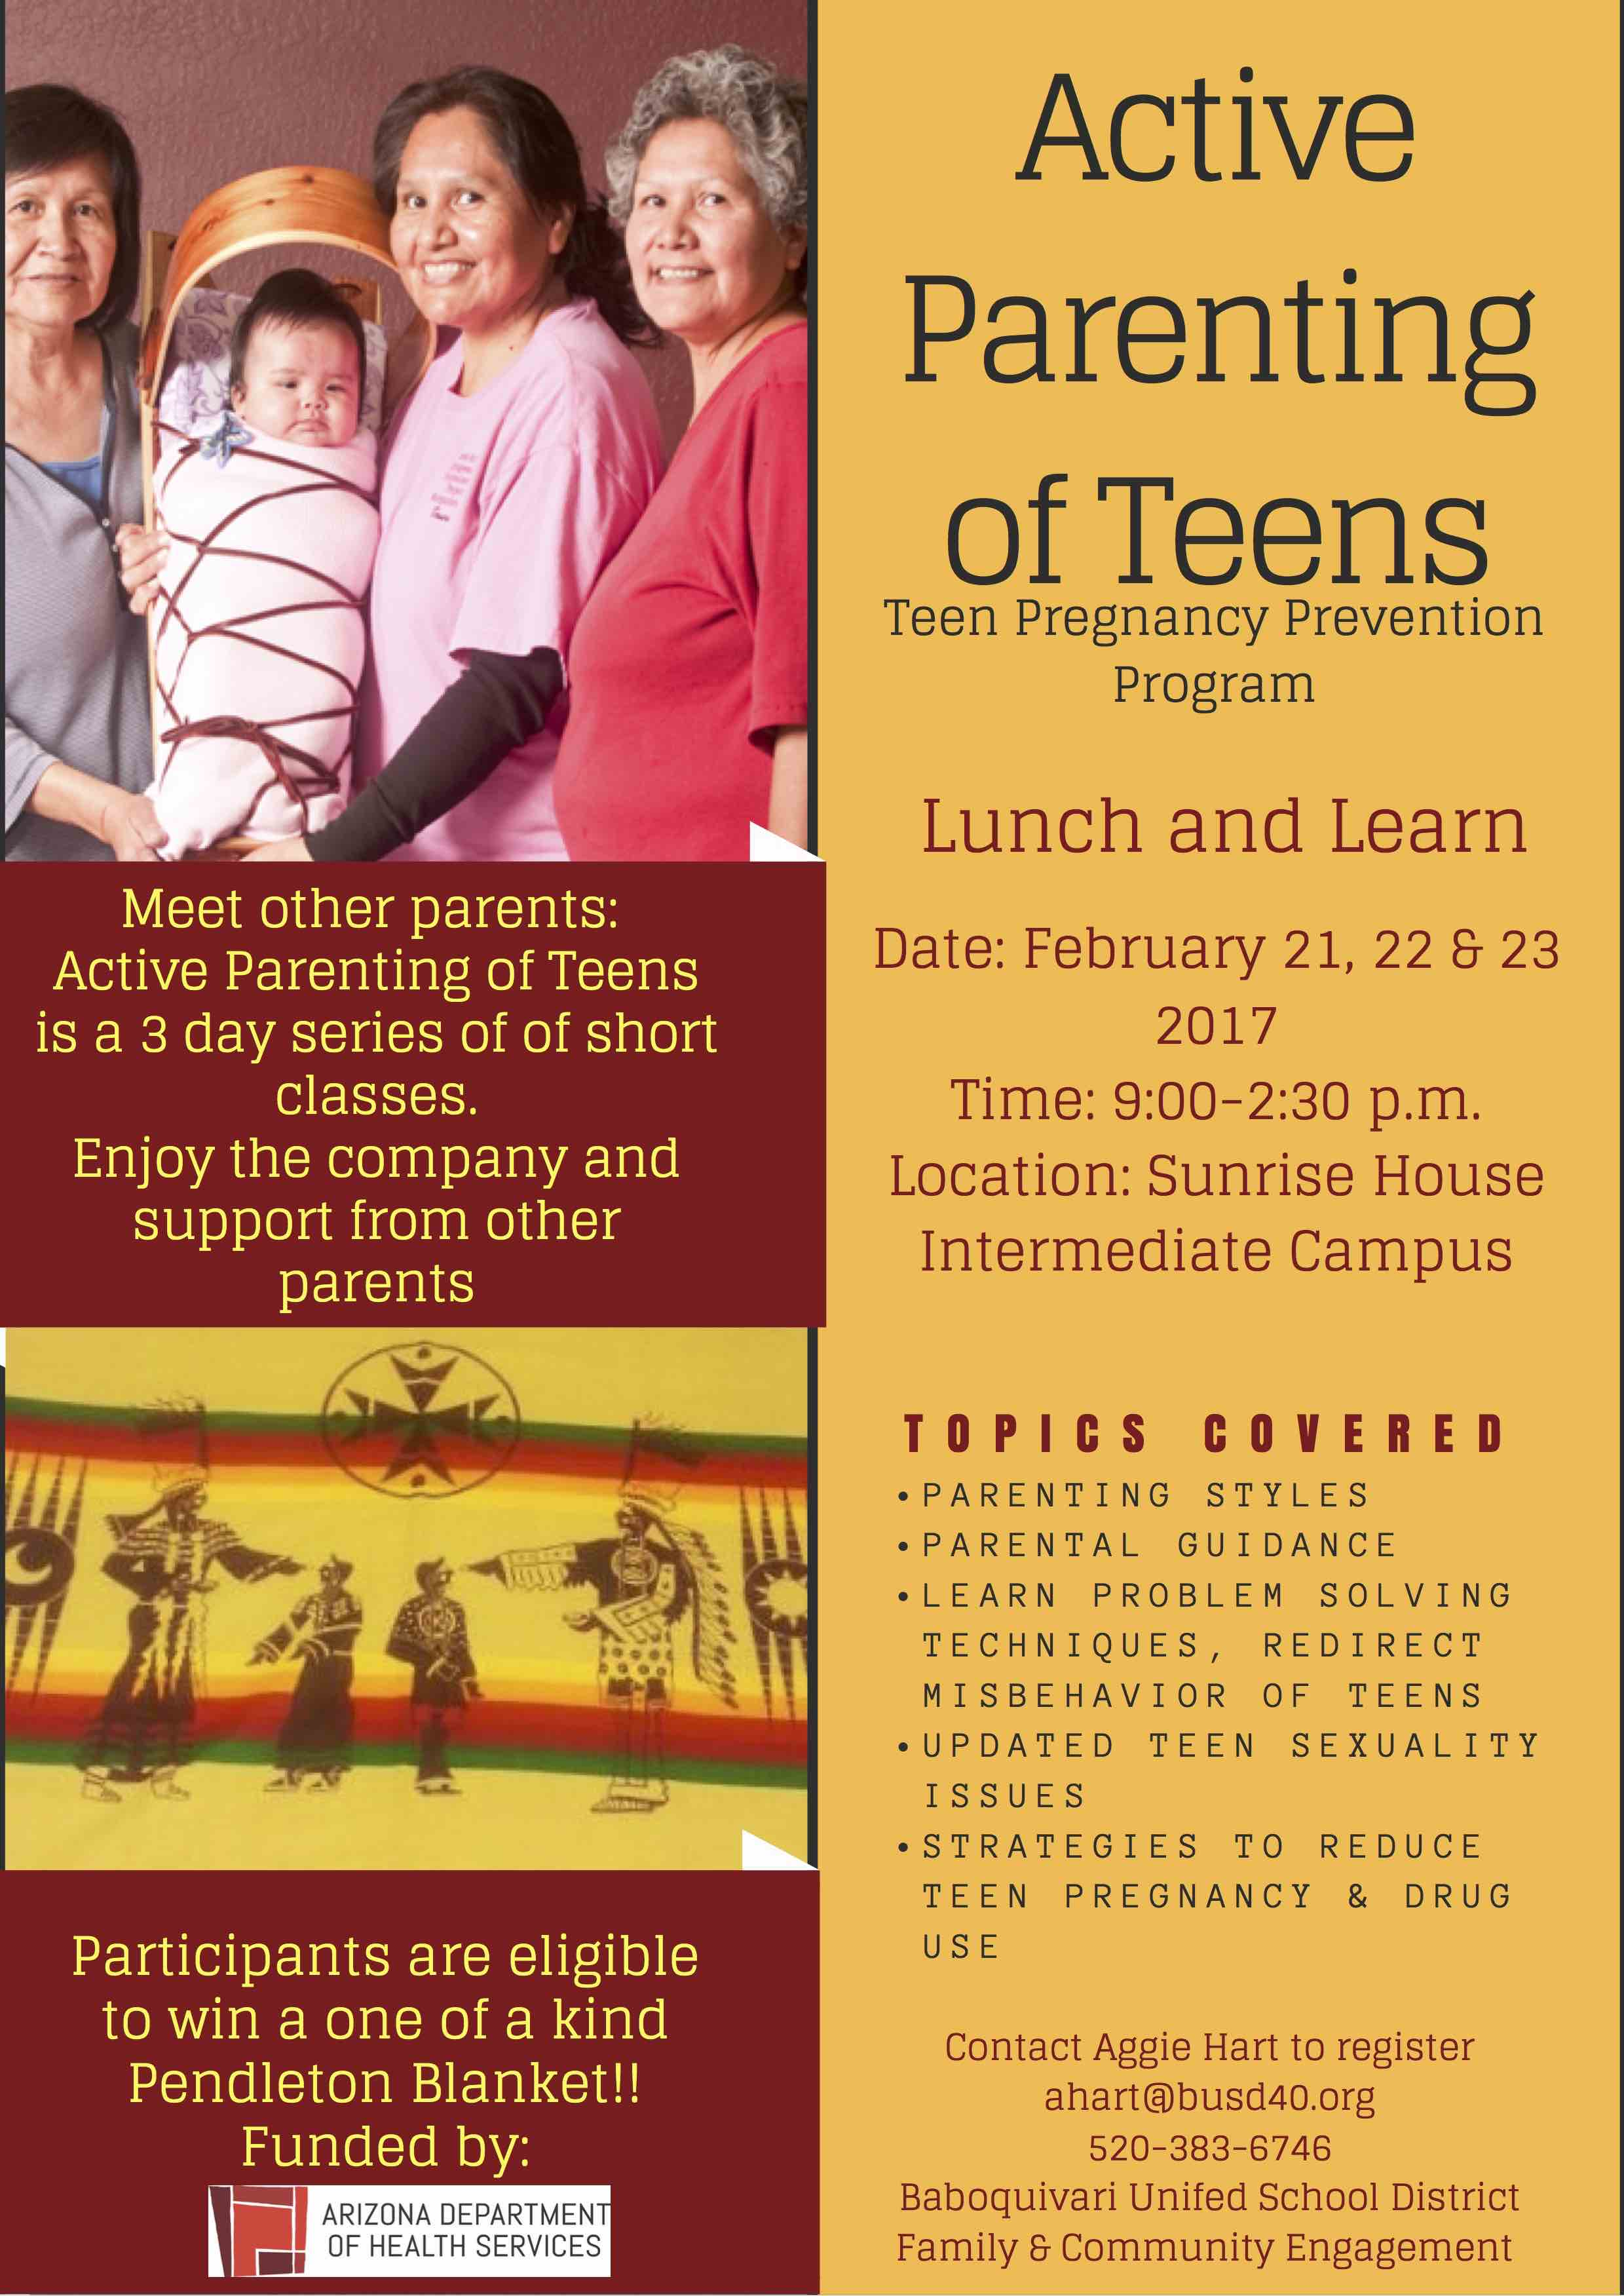 Active Parenting of Teens Flyer